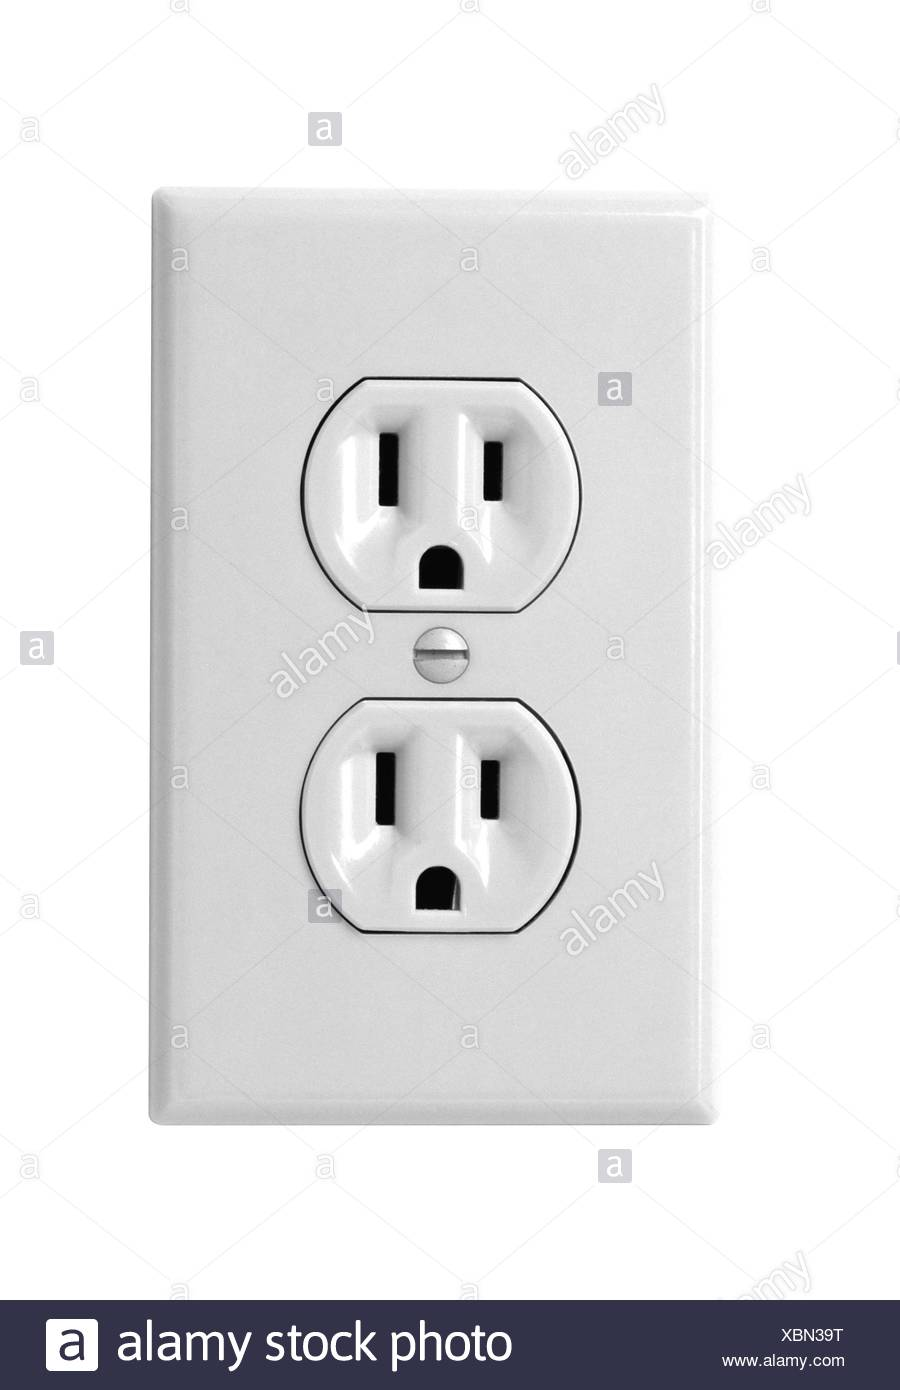 white electric wall outlet receptacle Stock Photo: 282590724 - Alamy